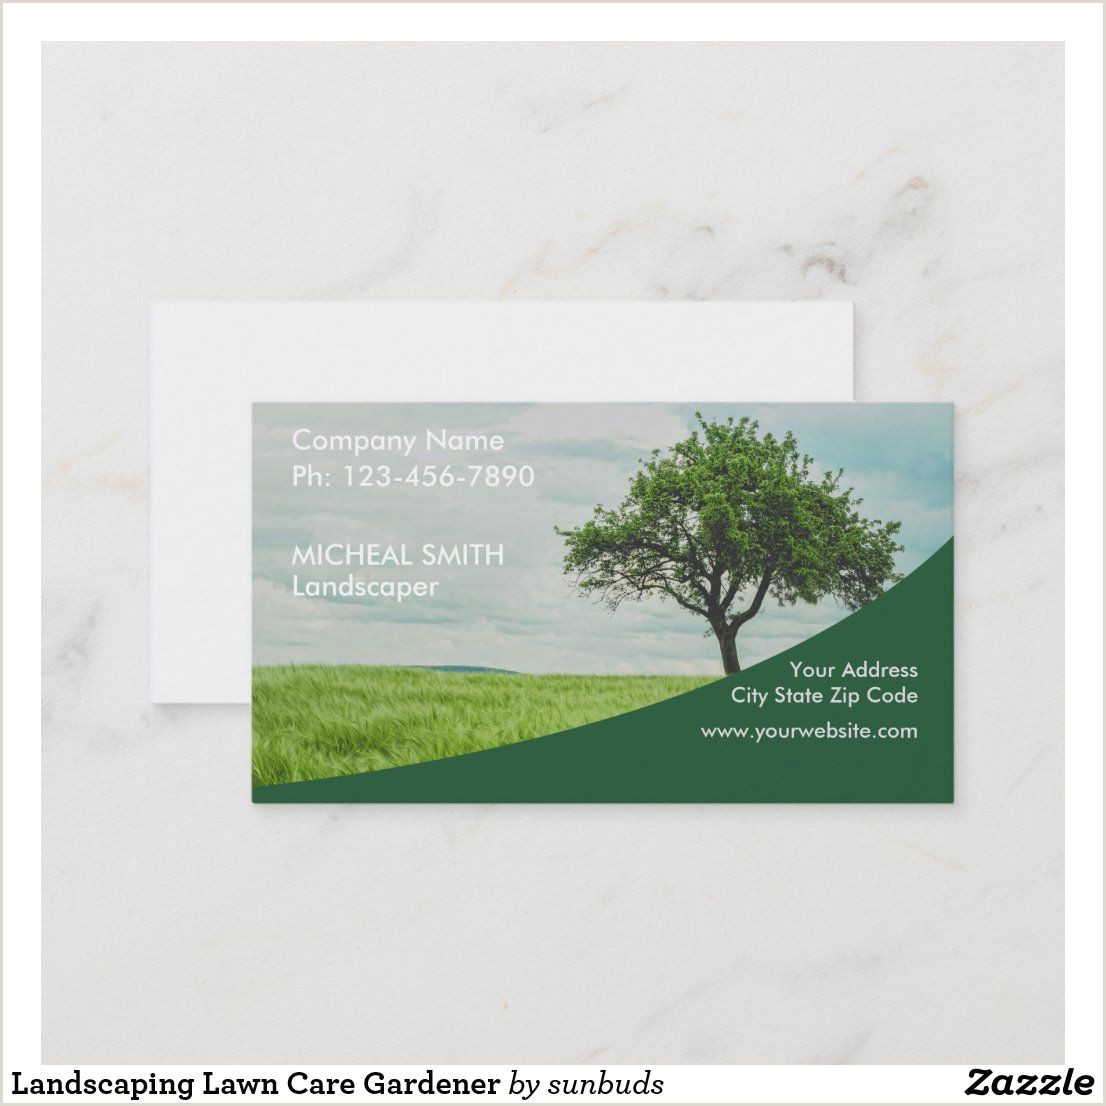 Unique Landscaping Business Cards Landscaping Lawn Care Gardener Business Card